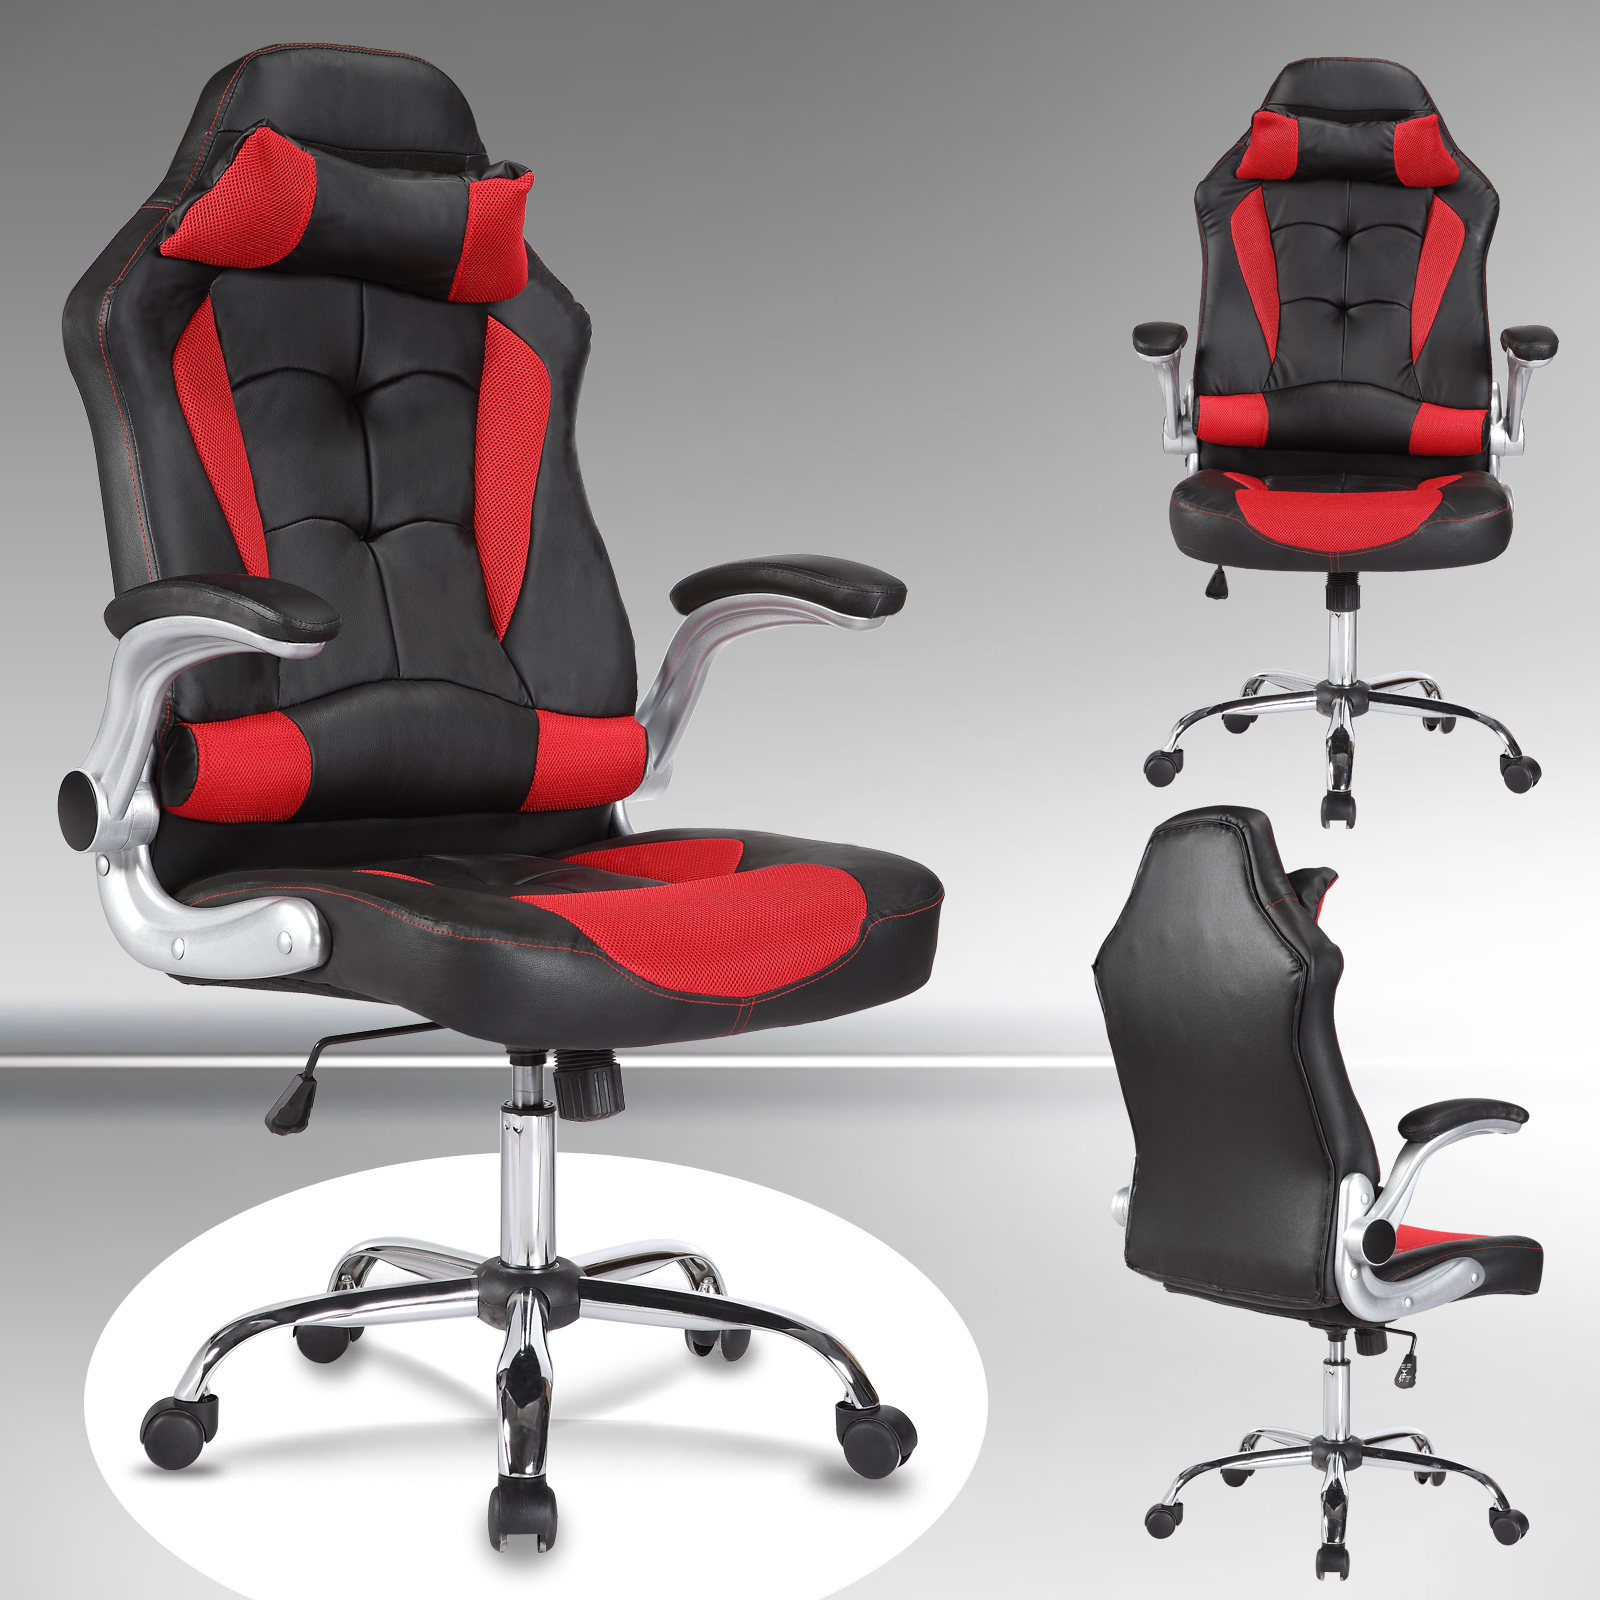 uenjoy gaming stuhl racing leder b rostuhl chefsessel schreibtischstuhl rot ebay. Black Bedroom Furniture Sets. Home Design Ideas